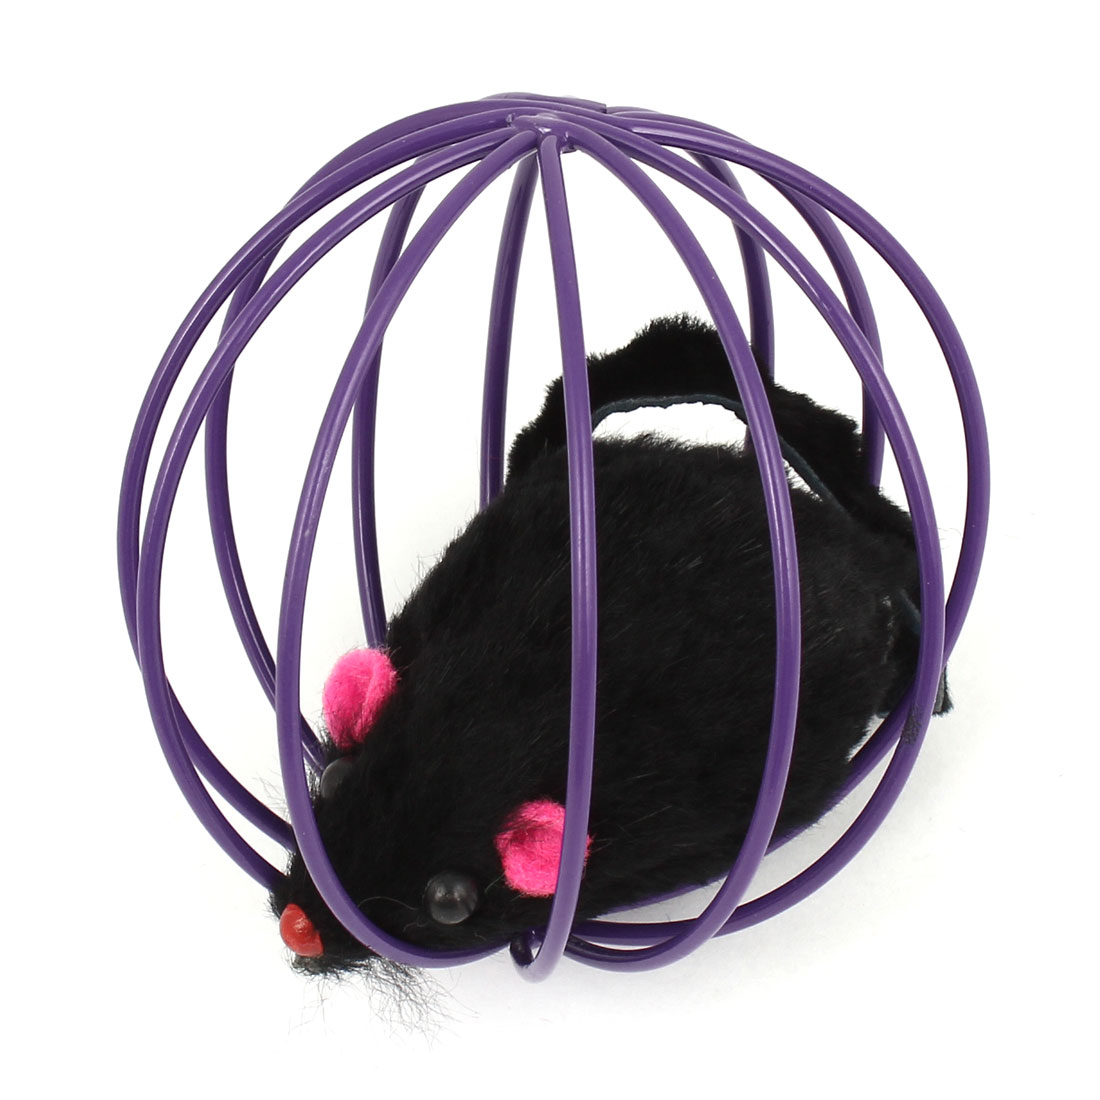 Black False Mouse Rat In Purple Metal Ball Shape Cage Pet Toy for Dog Cat Playing